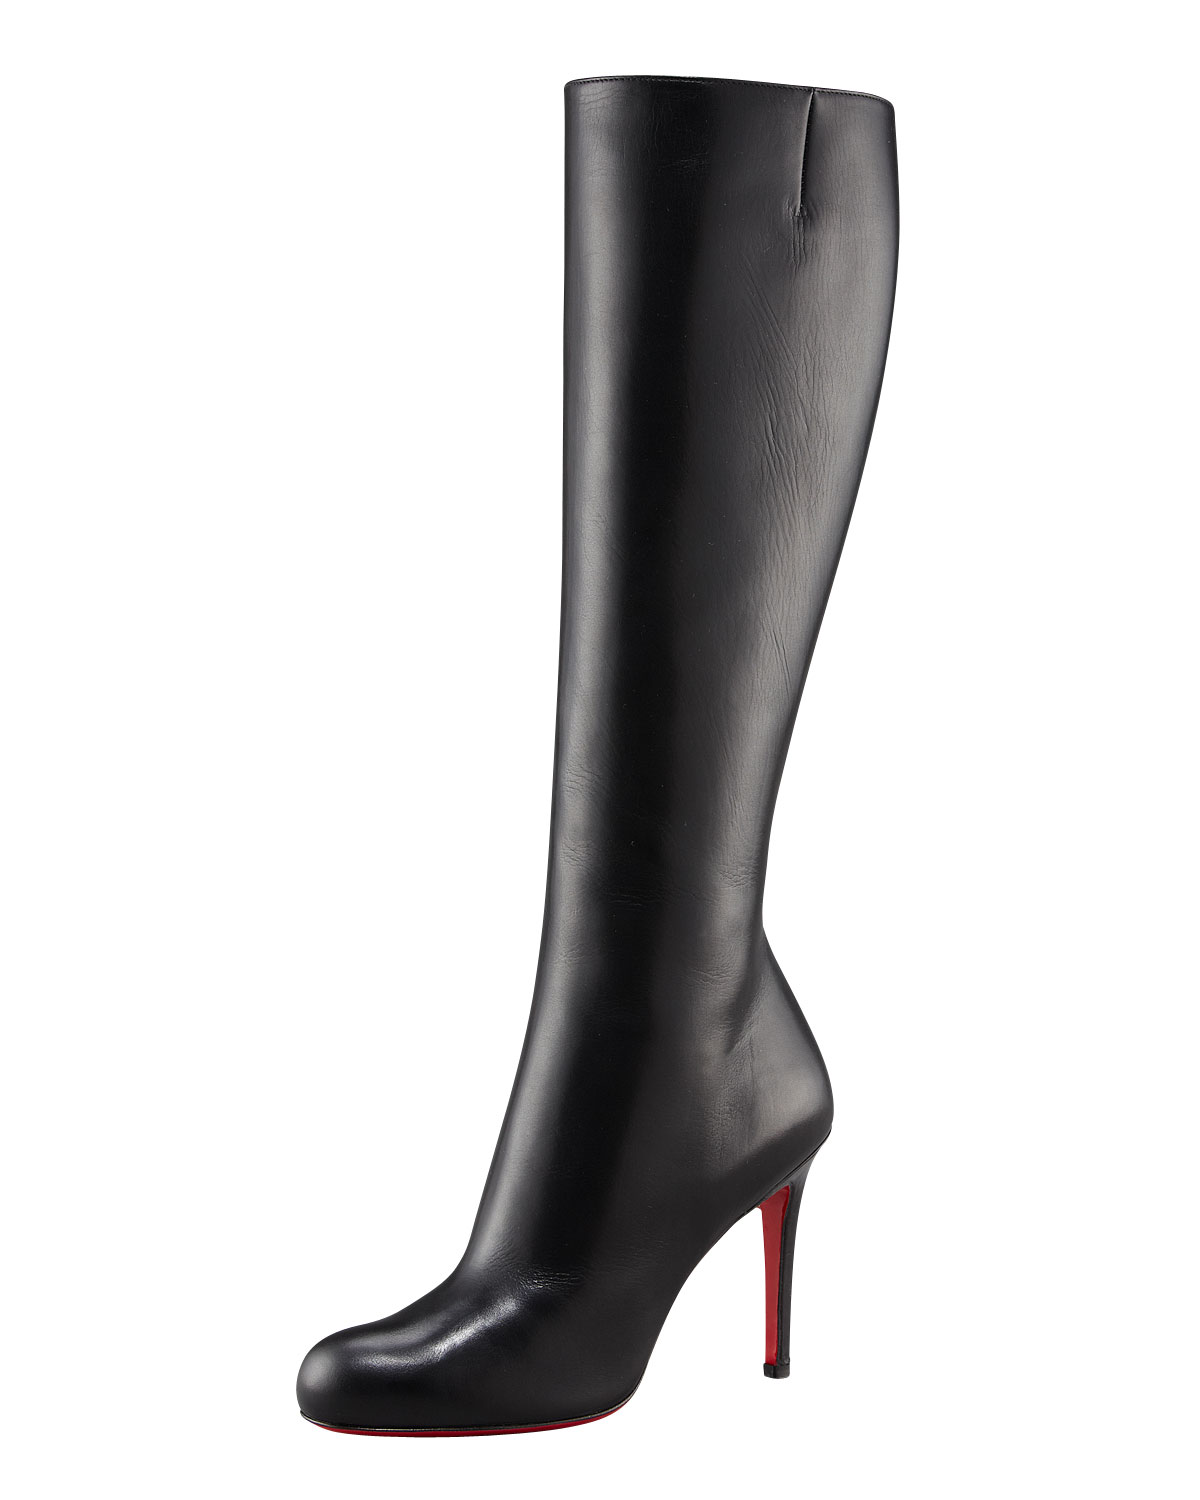 f9513fe2a4f2 Christian Louboutin New Simple Botta 120 Leather Knee Boots in Black ...